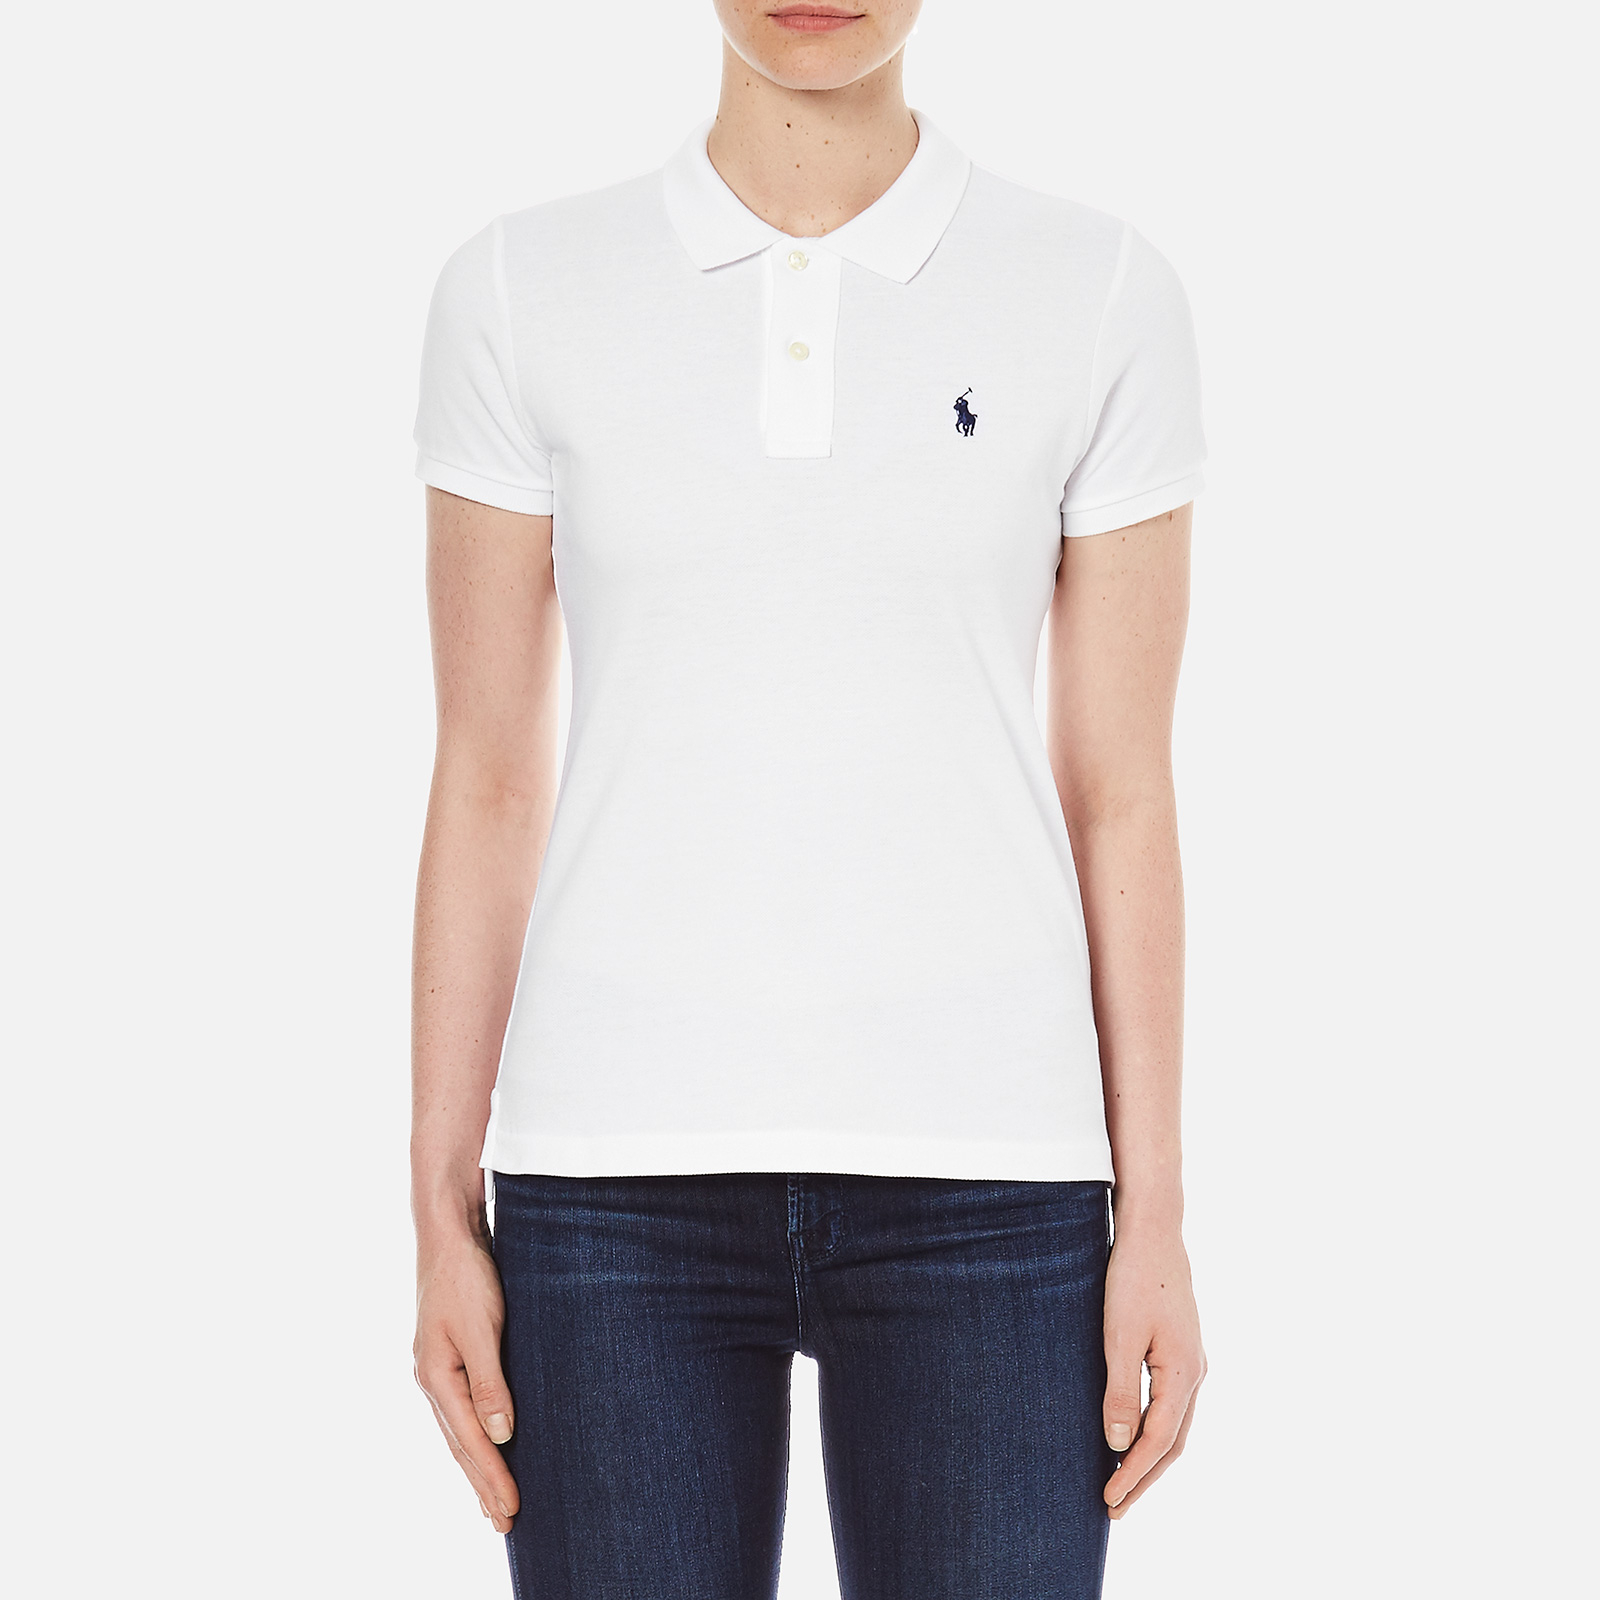 441374dd Polo Ralph Lauren Women's Skinny Fit Polo Shirt - White - Free UK Delivery  over £50